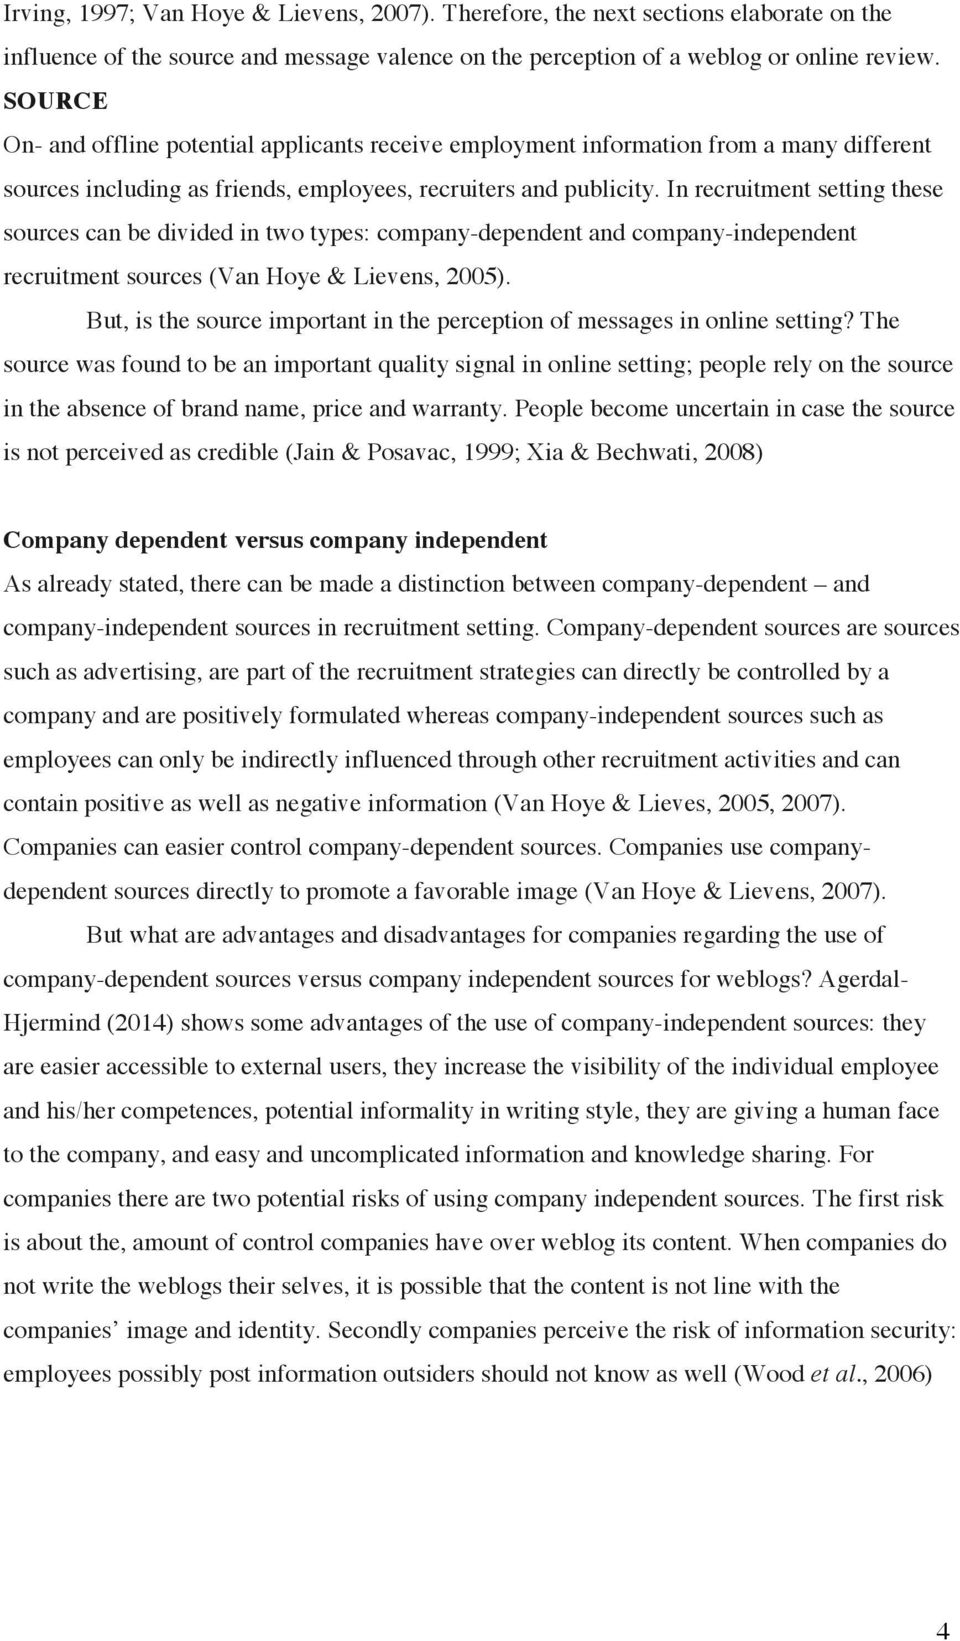 In recruitment setting these sources can be divided in two types: company-dependent and company-independent recruitment sources (Van Hoye & Lievens, 2005).